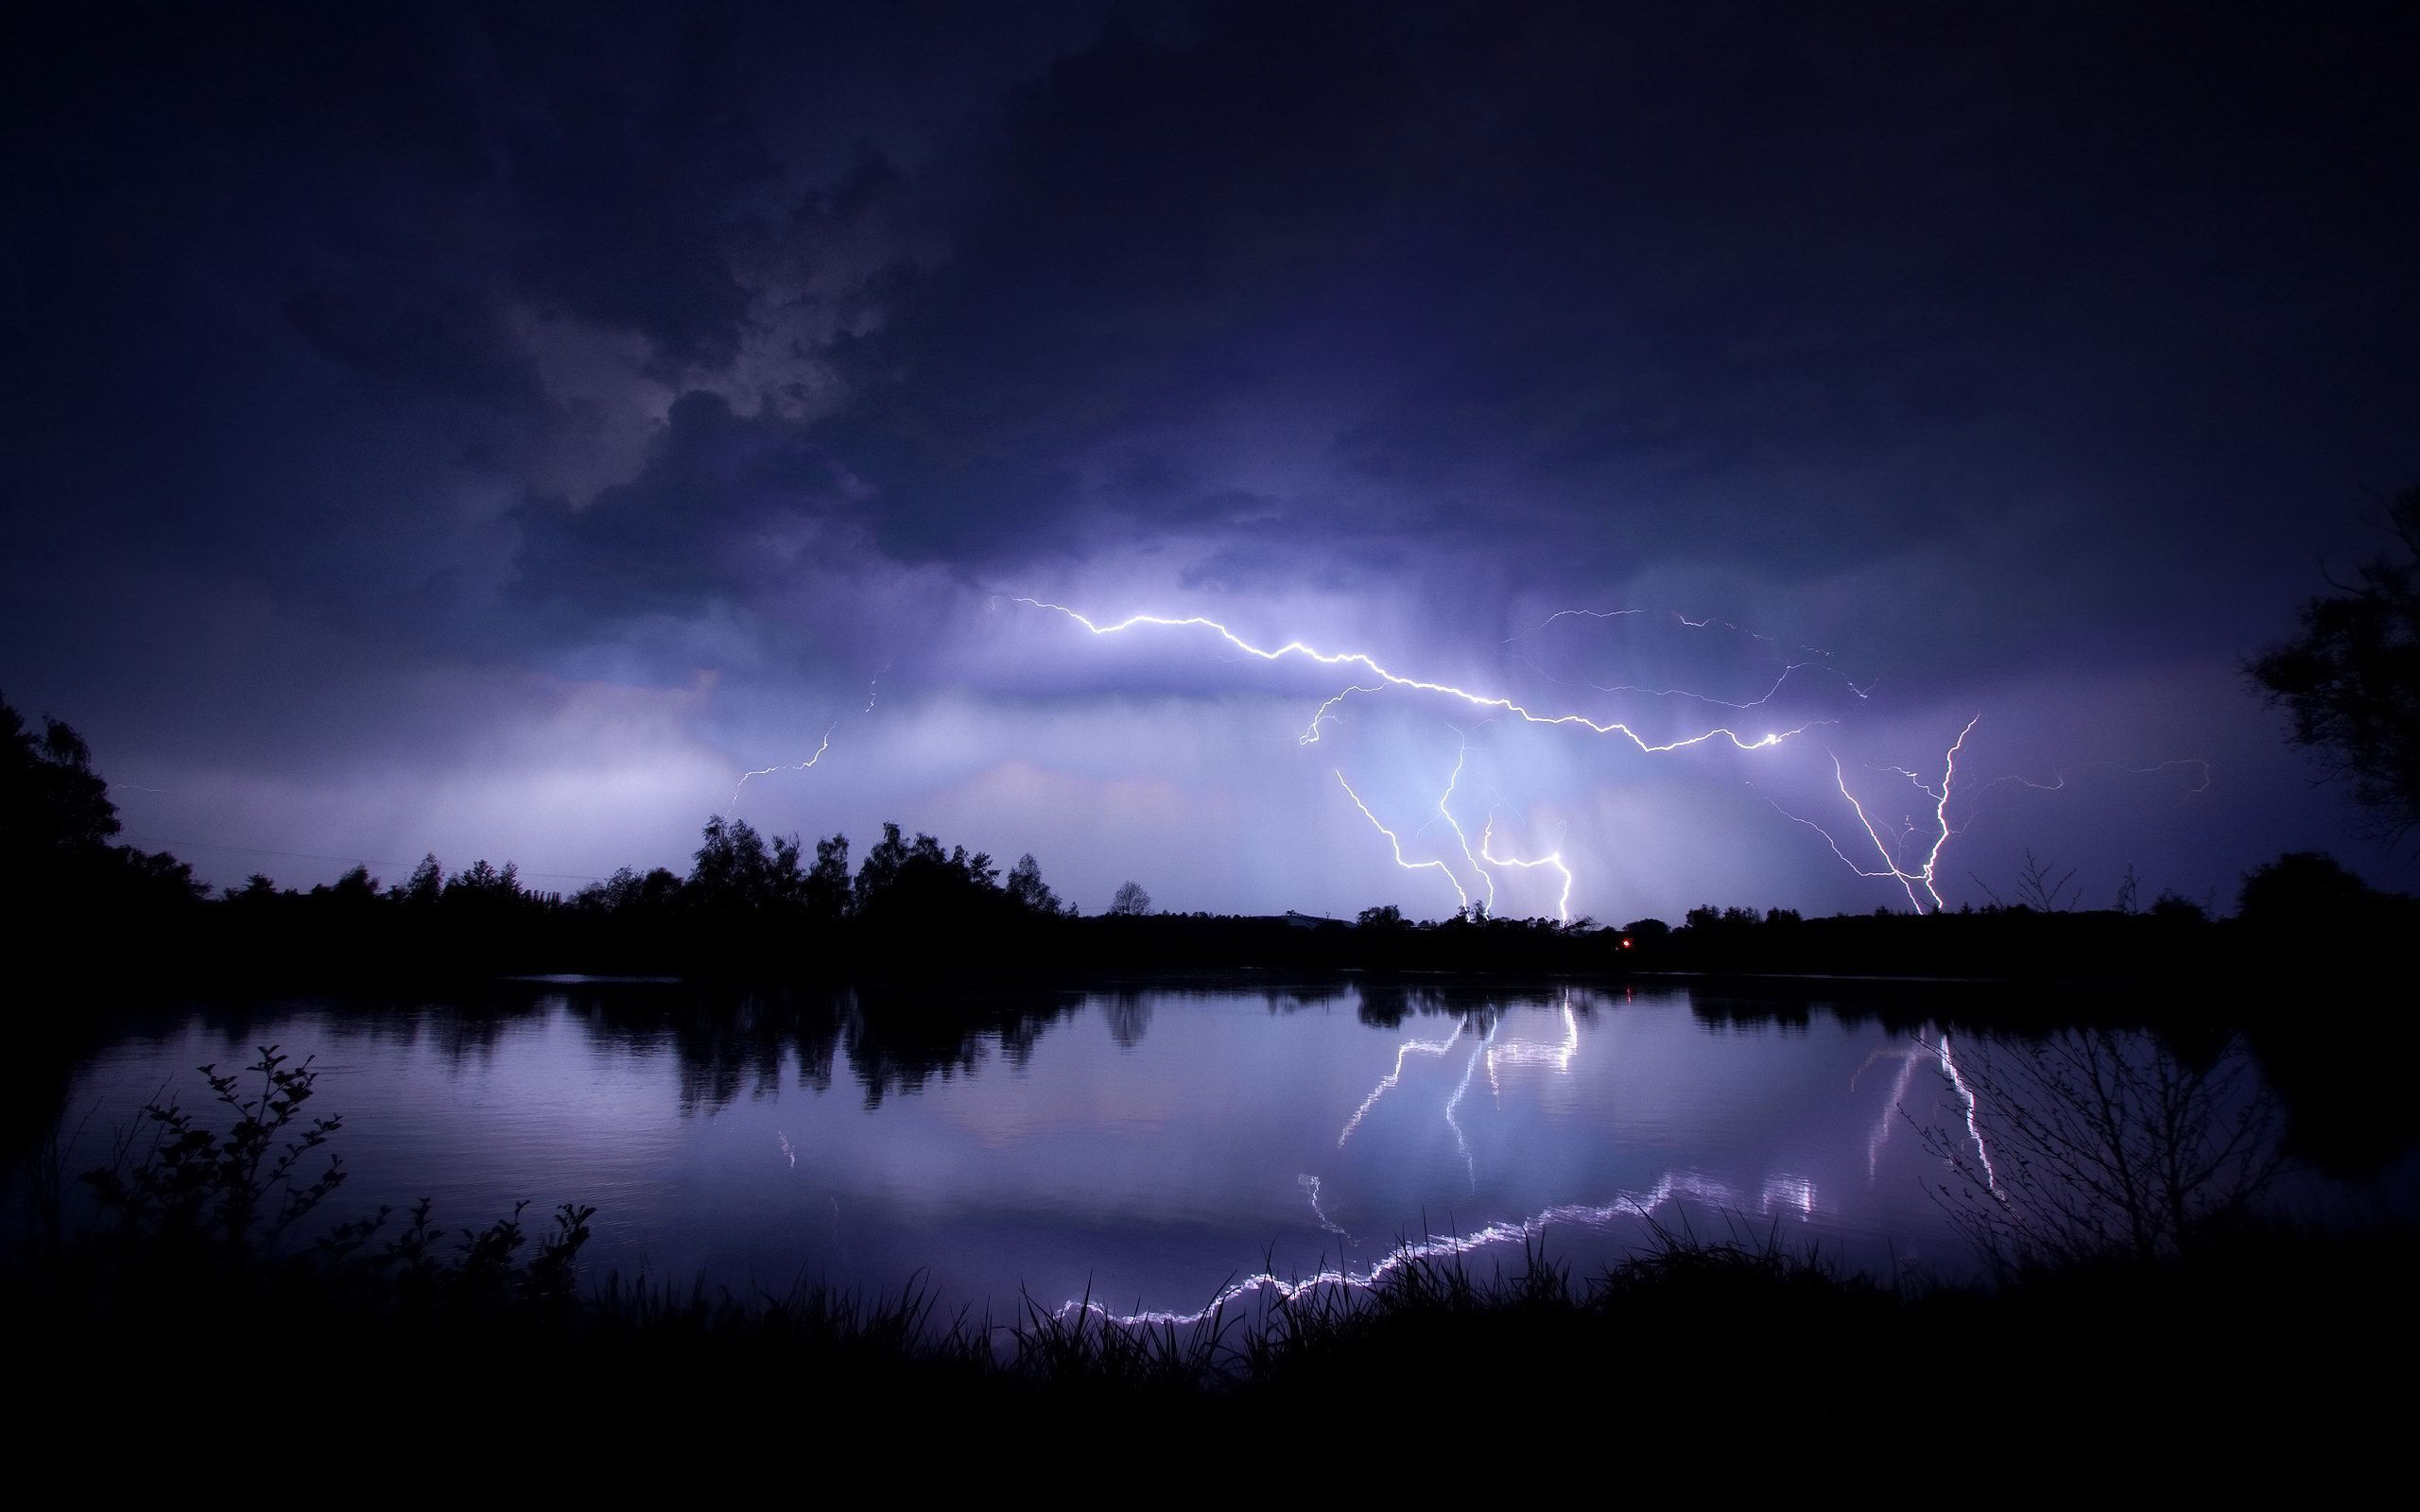 2560x1600 Lightning-striking-the-lakeside-night-storm-nature-hd-